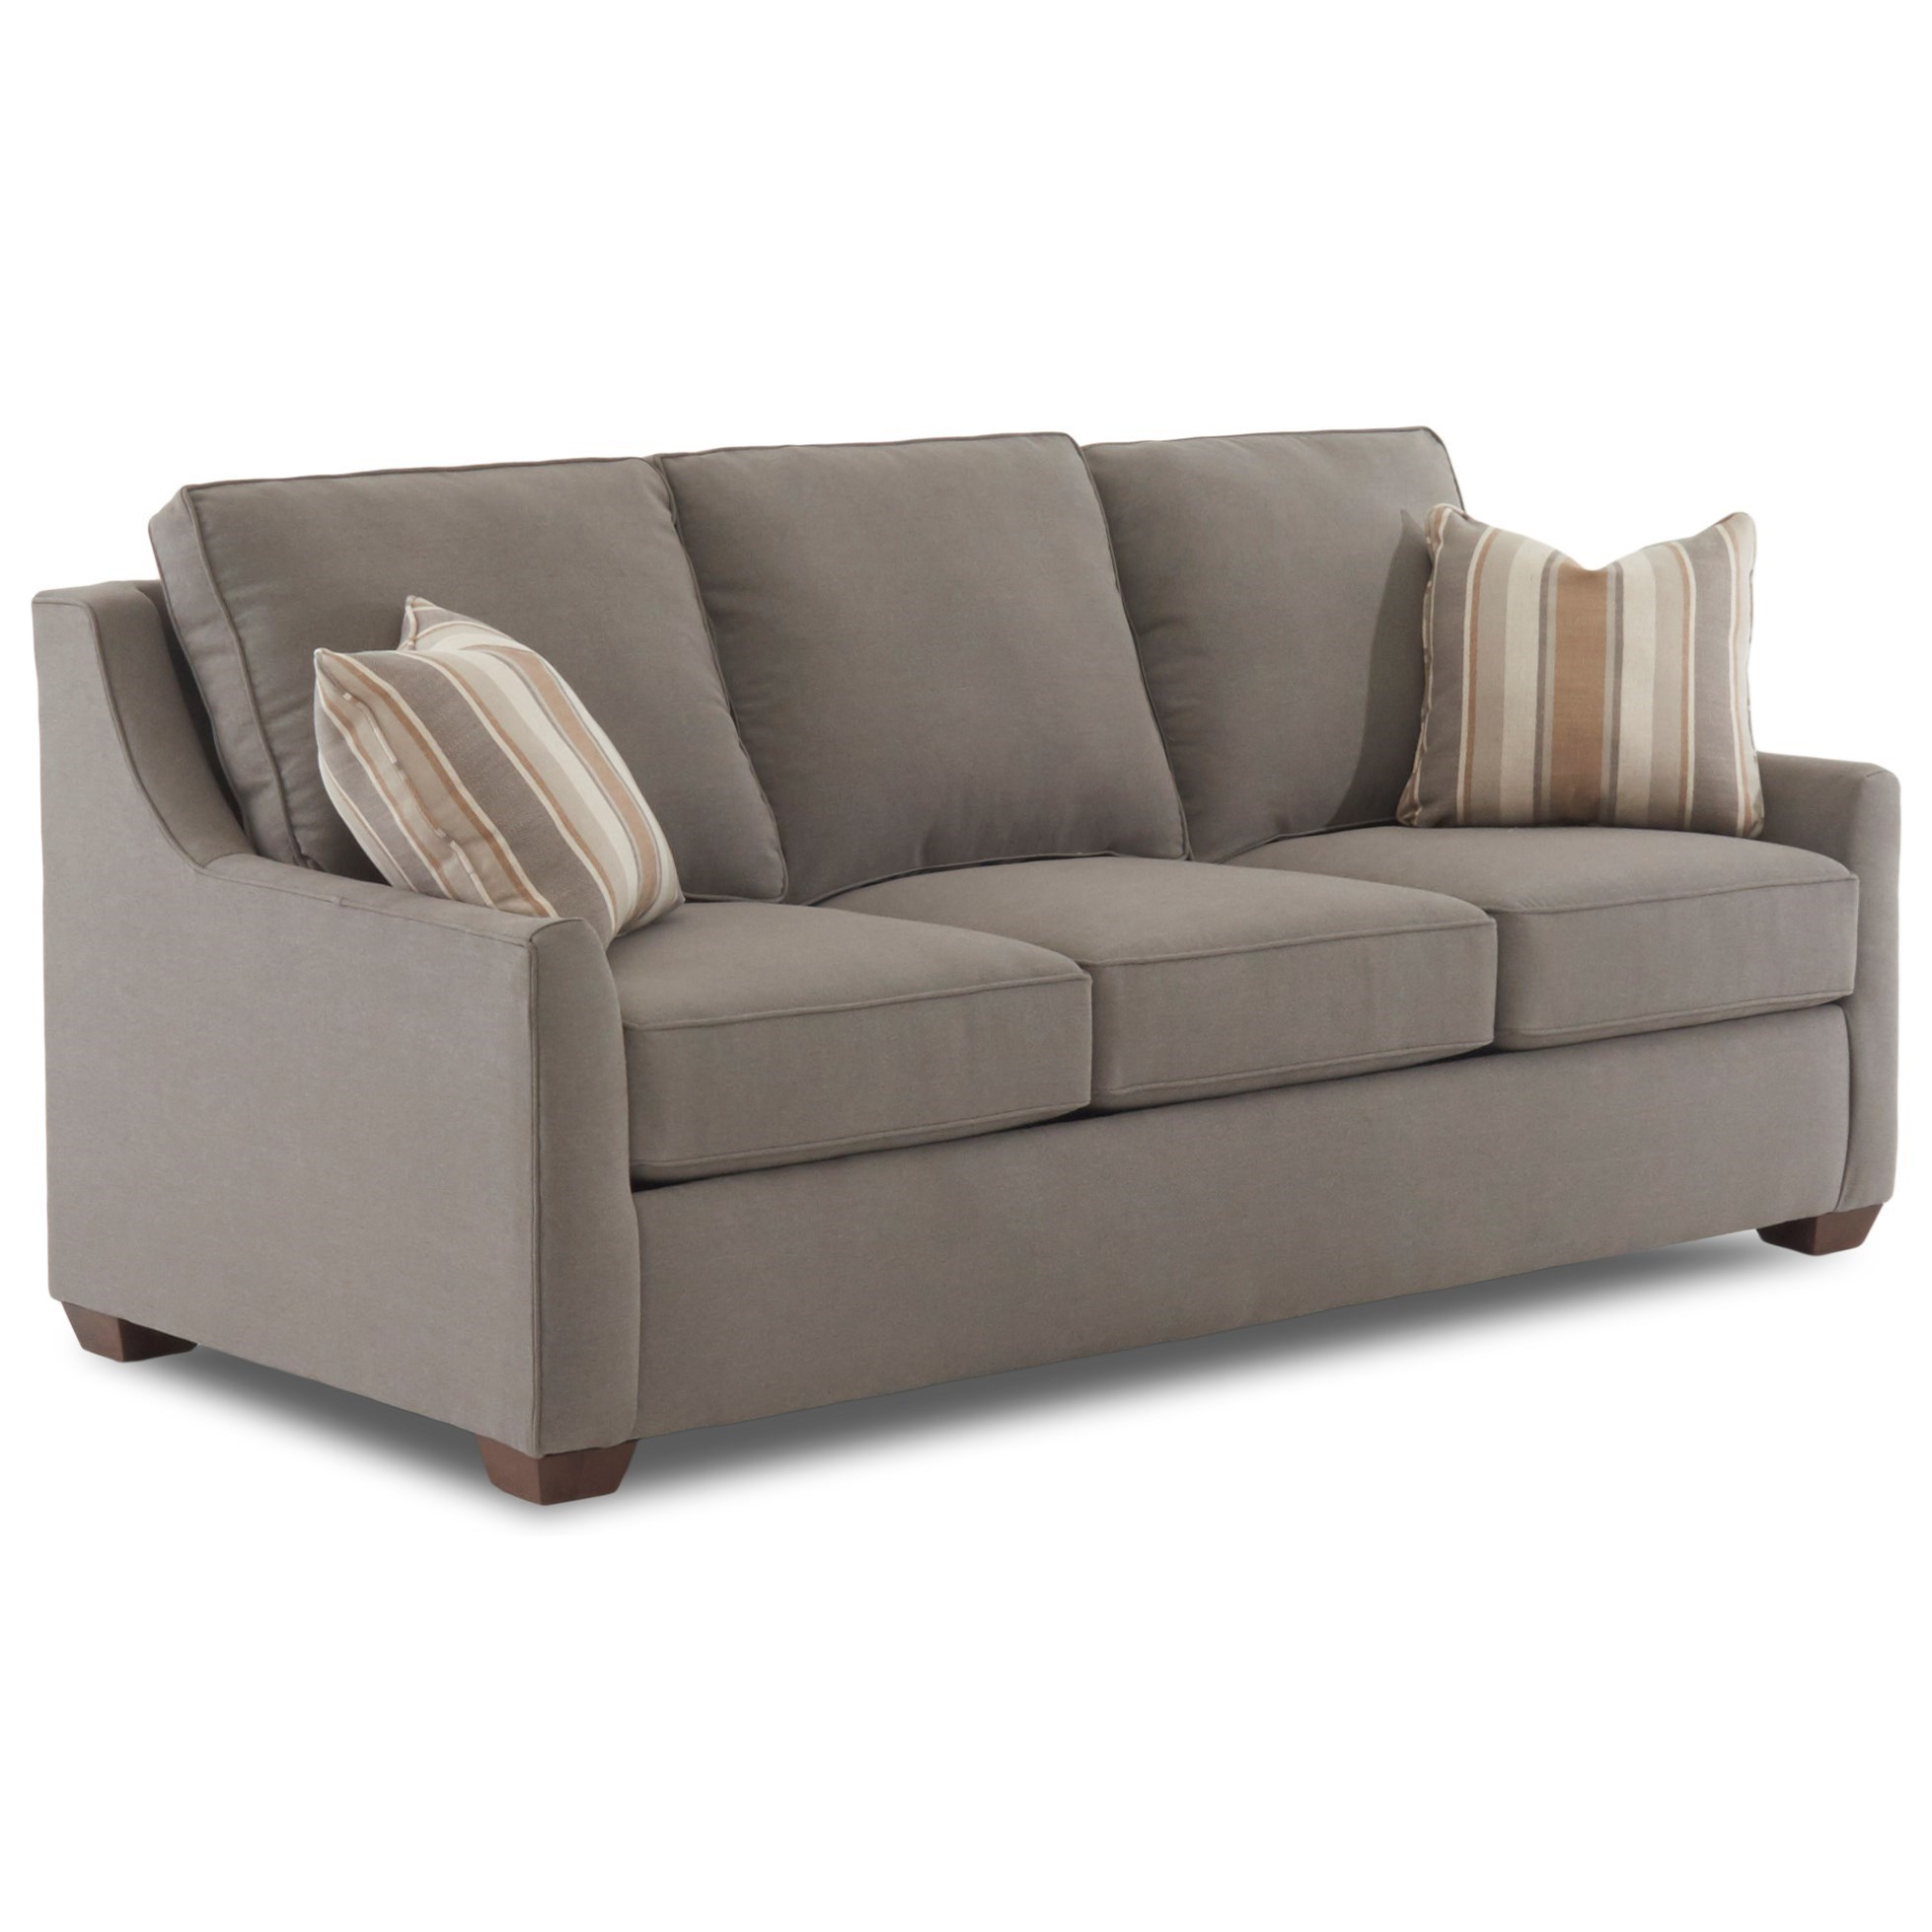 max coil sofa bed loveseat sleeper crate and barrel klaussner fulton contemporary 80 quot with air